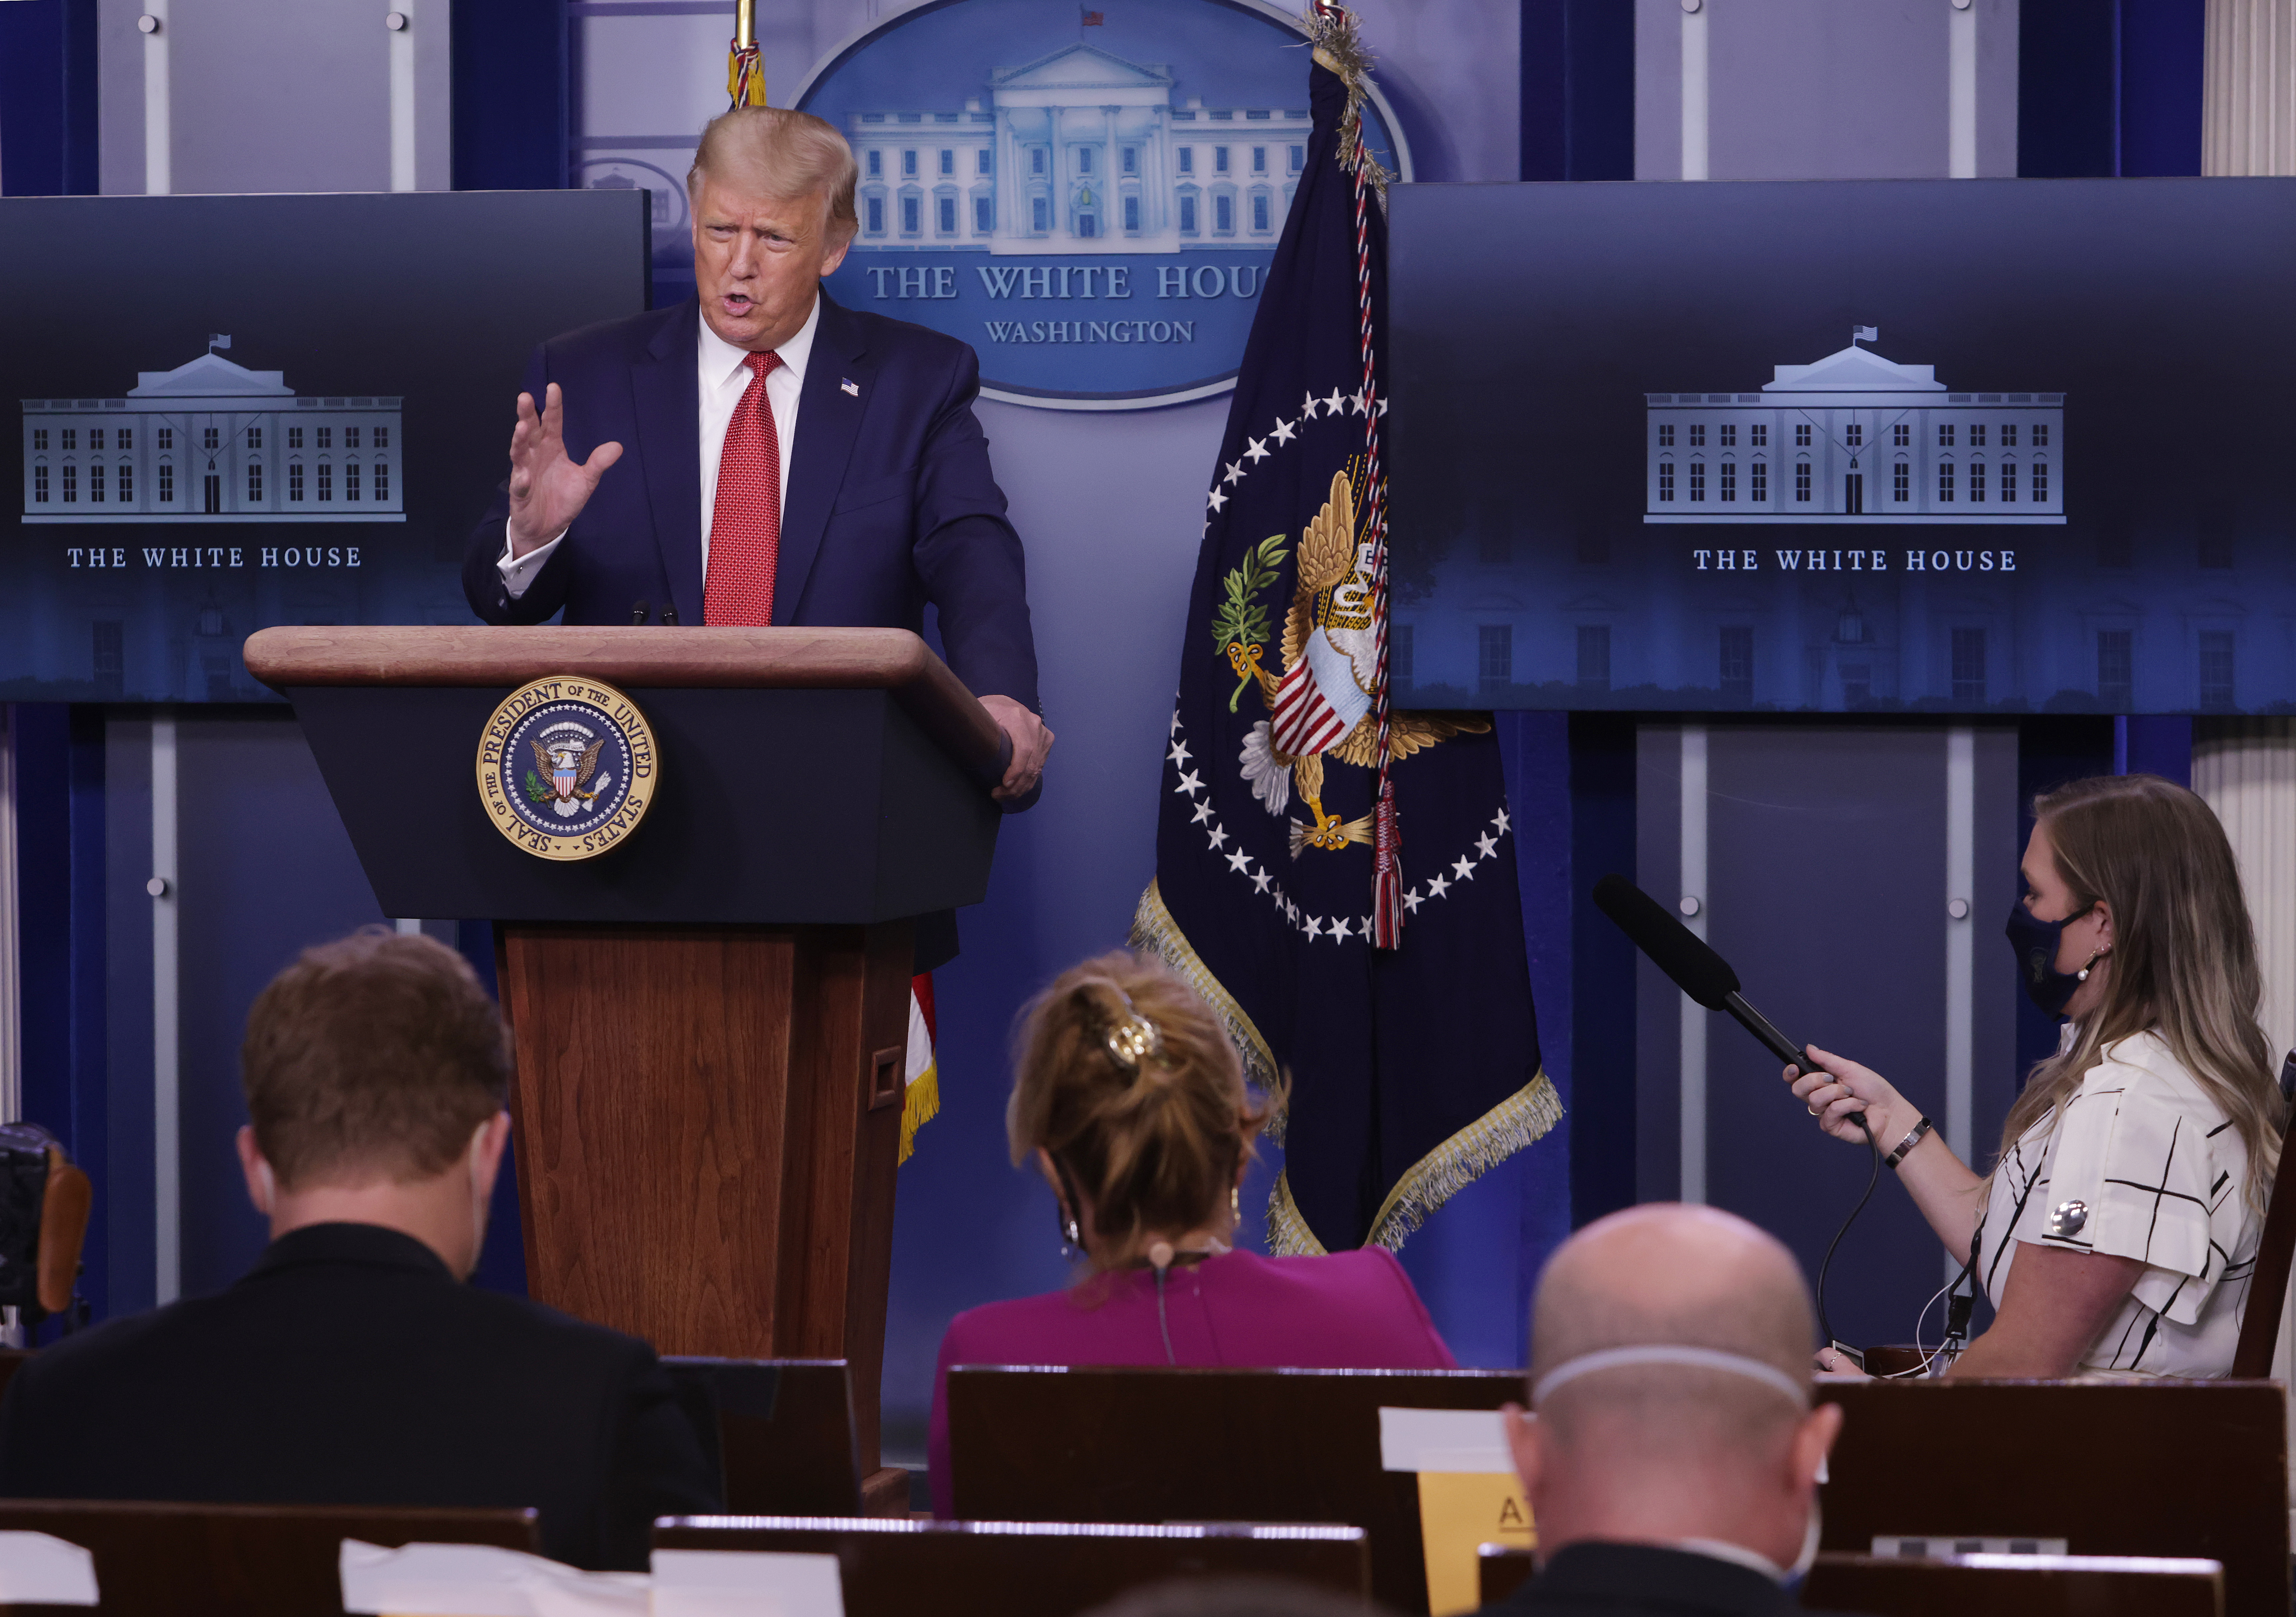 WASHINGTON, DC - AUGUST 10: U.S. President Donald Trump speaks during a news conference at the James Brady Press Briefing Room of the White House August 10, 2020 in Washington, DC. Trump tweeted earlier today that he will accept the Republican presidential nomination on August 27 either at the Civil War battlefield in Gettysburg, Pennsylvania, or at the White House.  (Photo by Alex Wong/Getty Images)